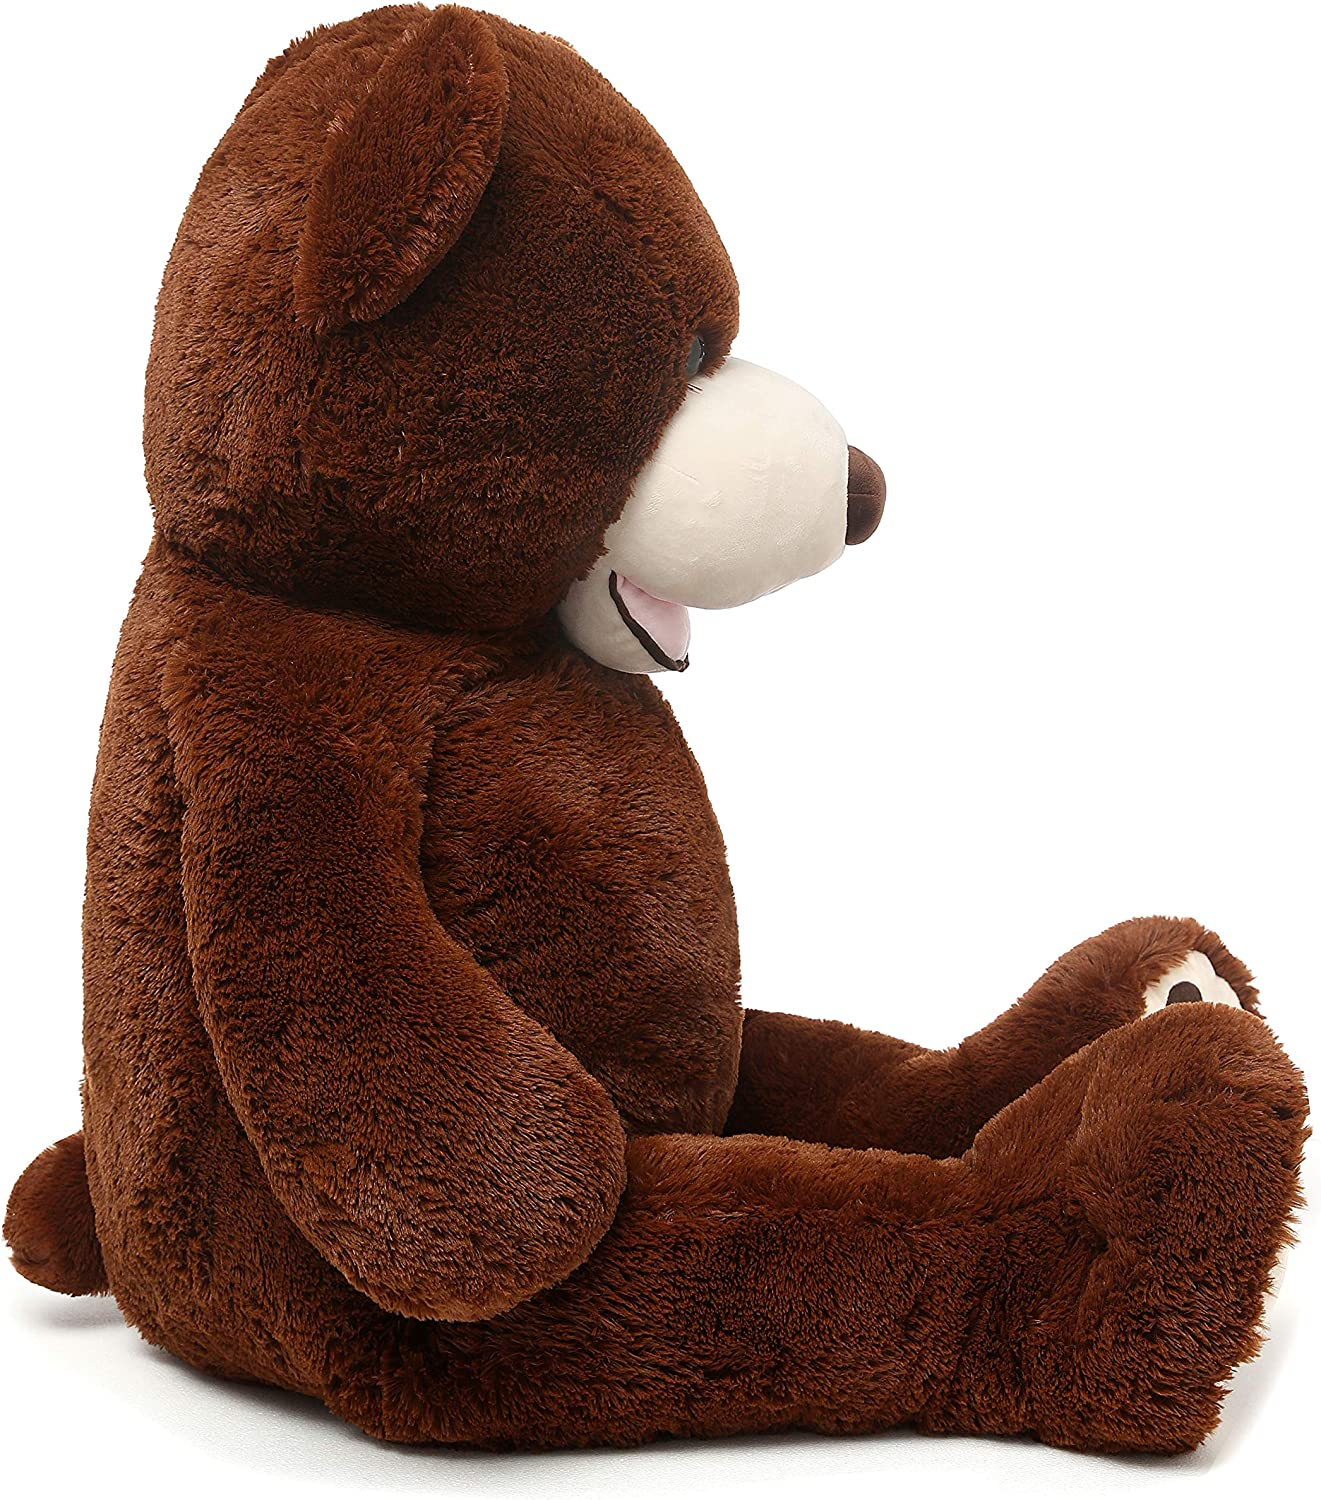 MorisMos Giant Teddy Bear with Big Footprints Plush Stuffed Animals Light Brown 39 inches: Toys & Games